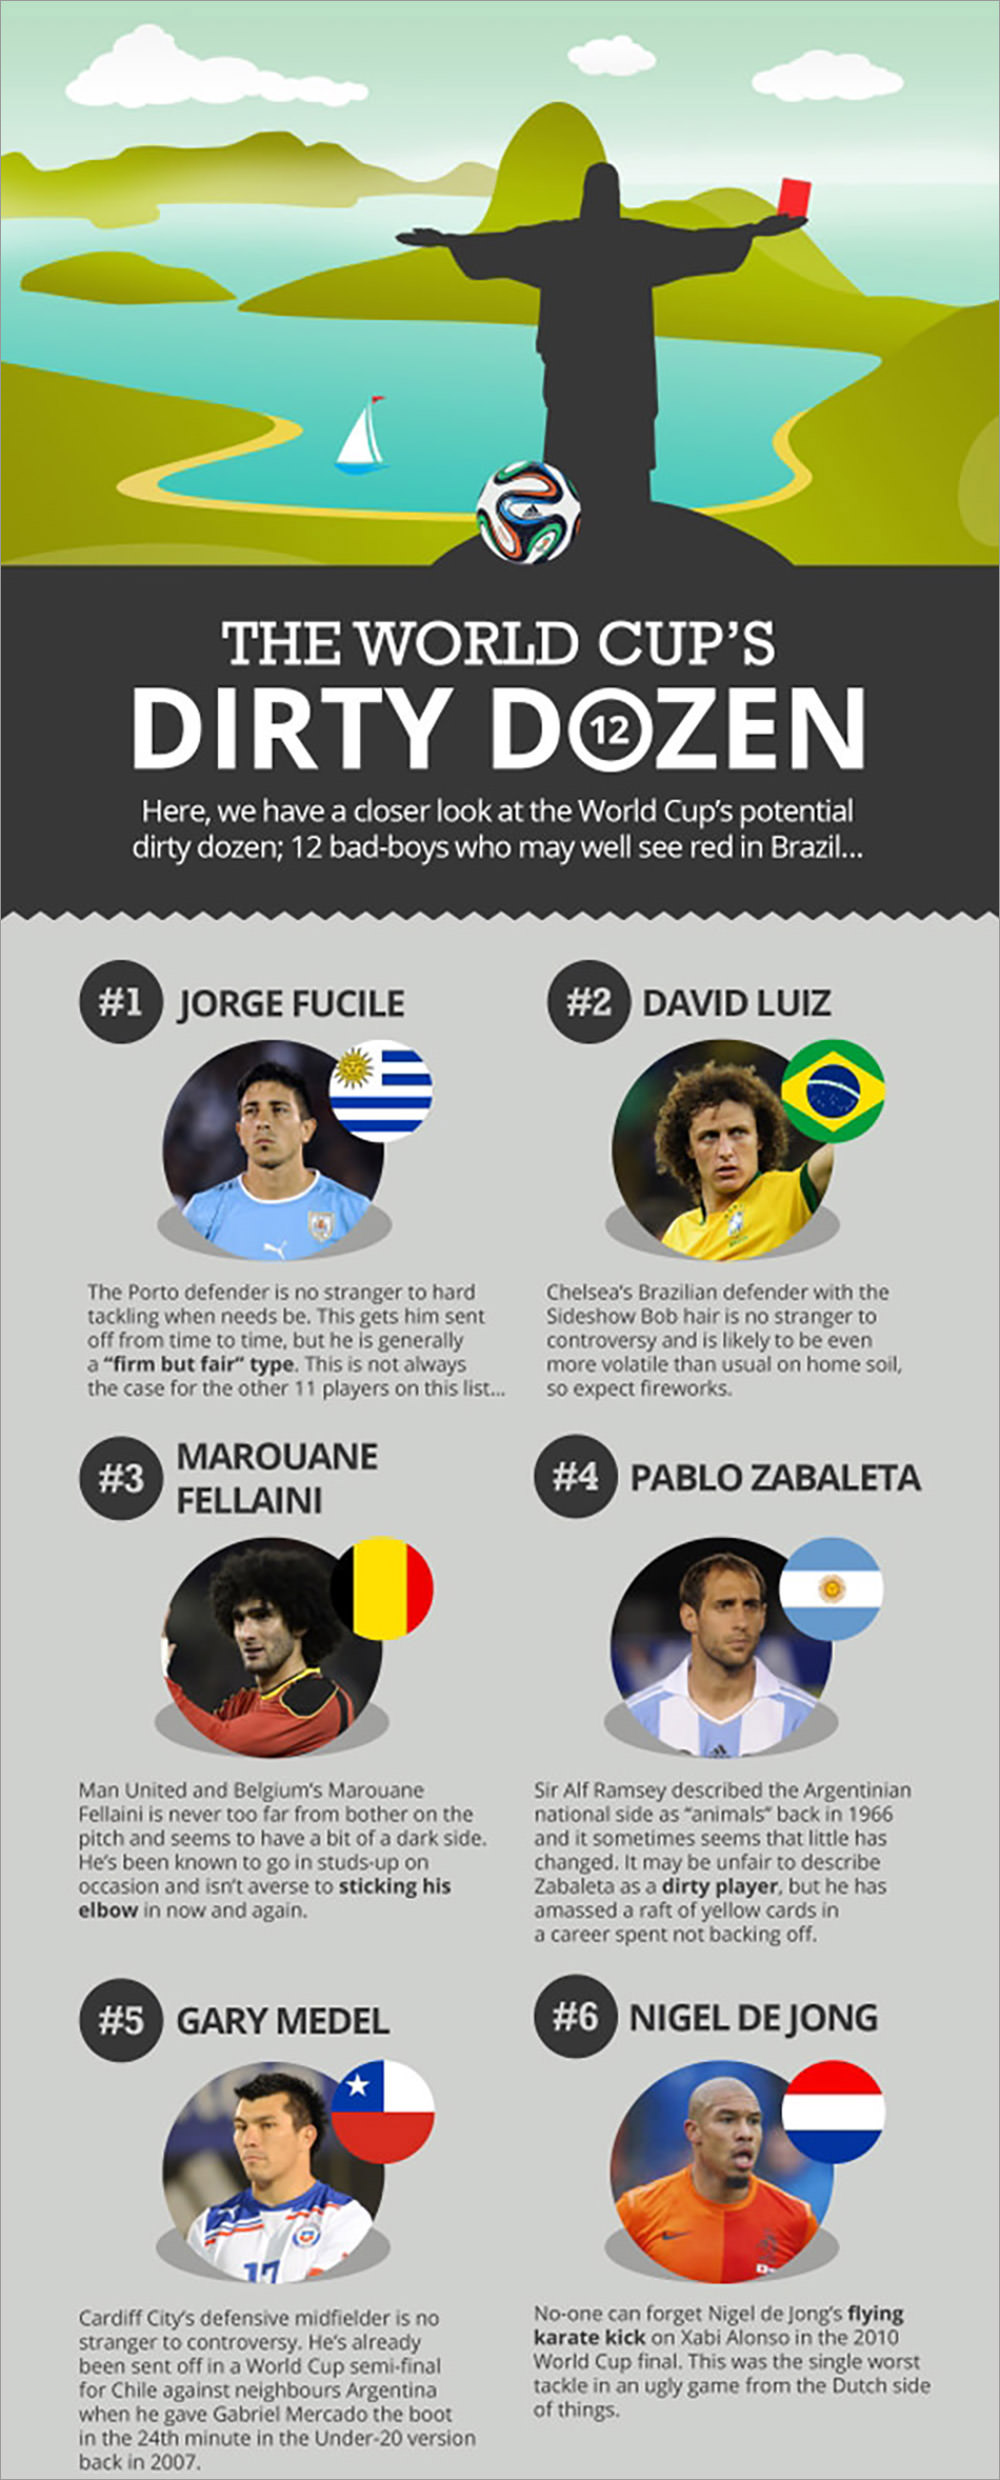 The World Cup Dirty Dozen